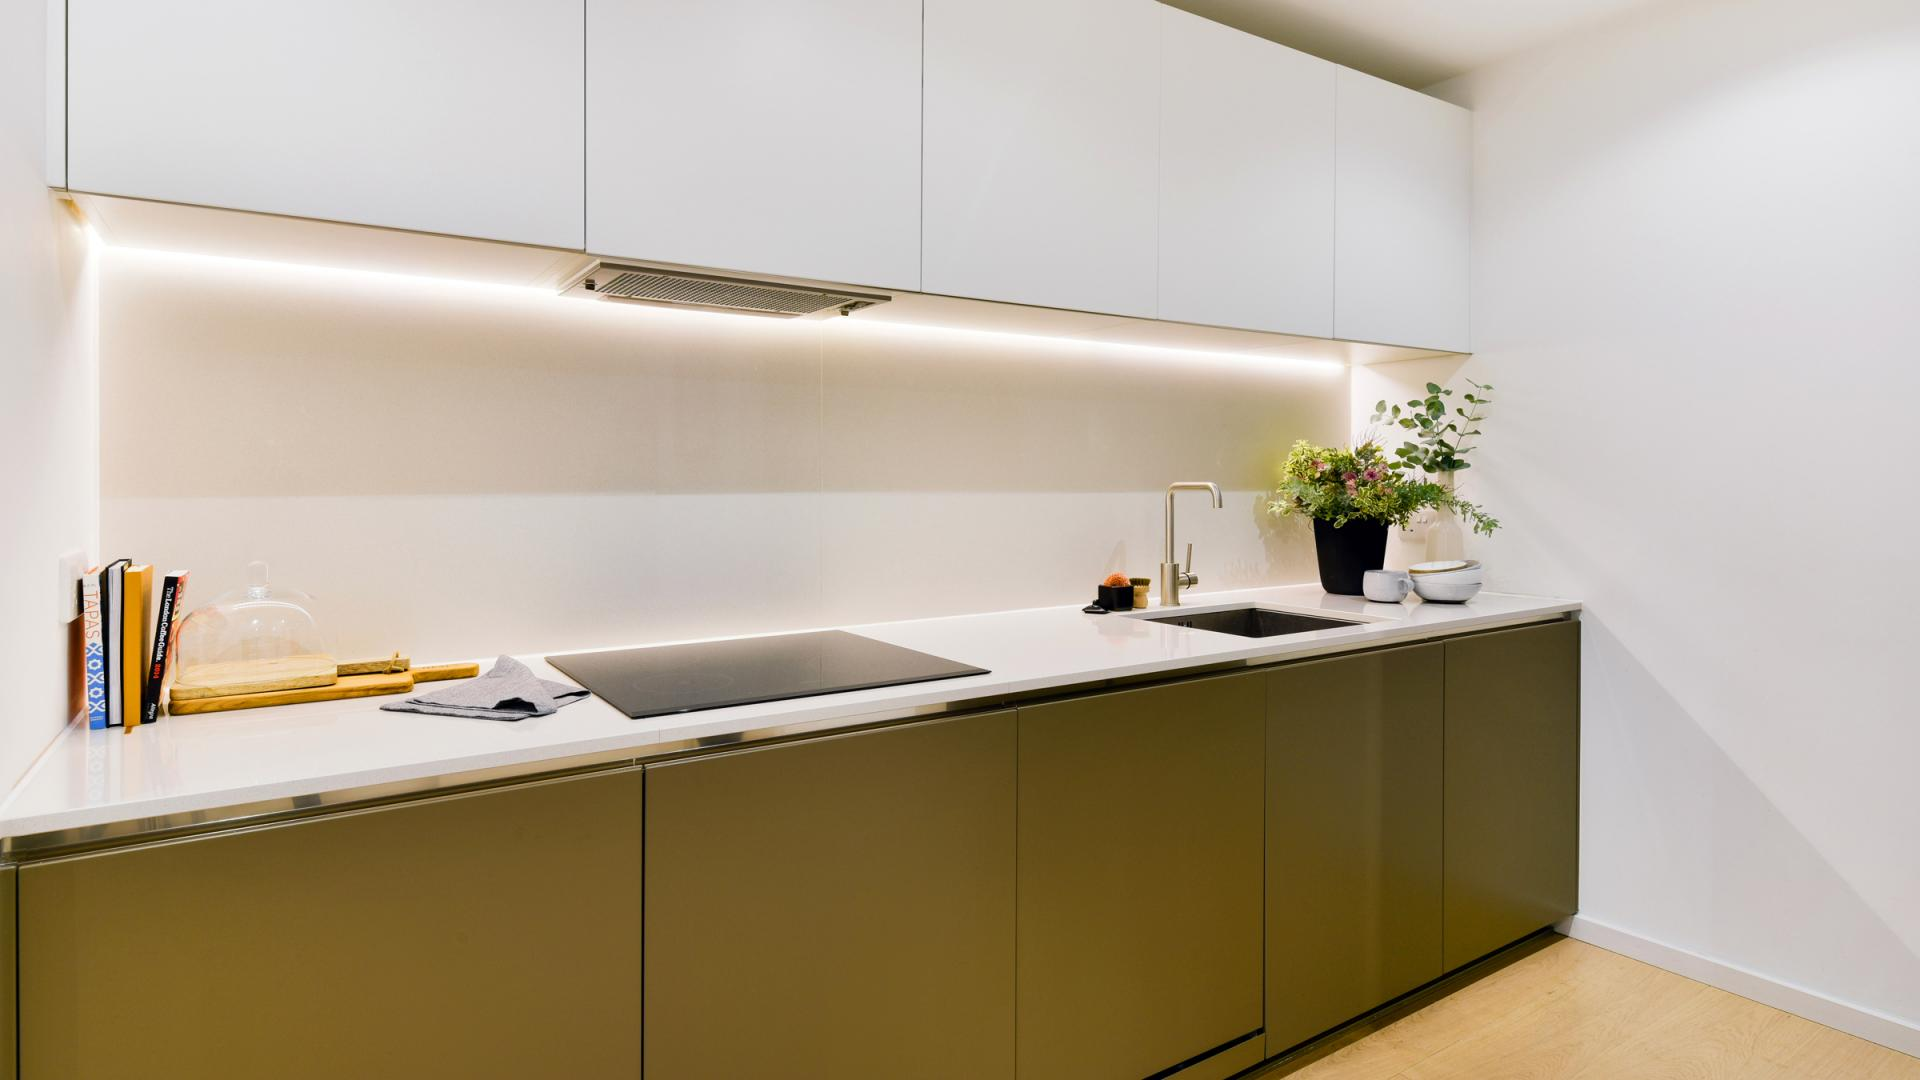 Kitchen facilities at Clapham South 1 Apartment